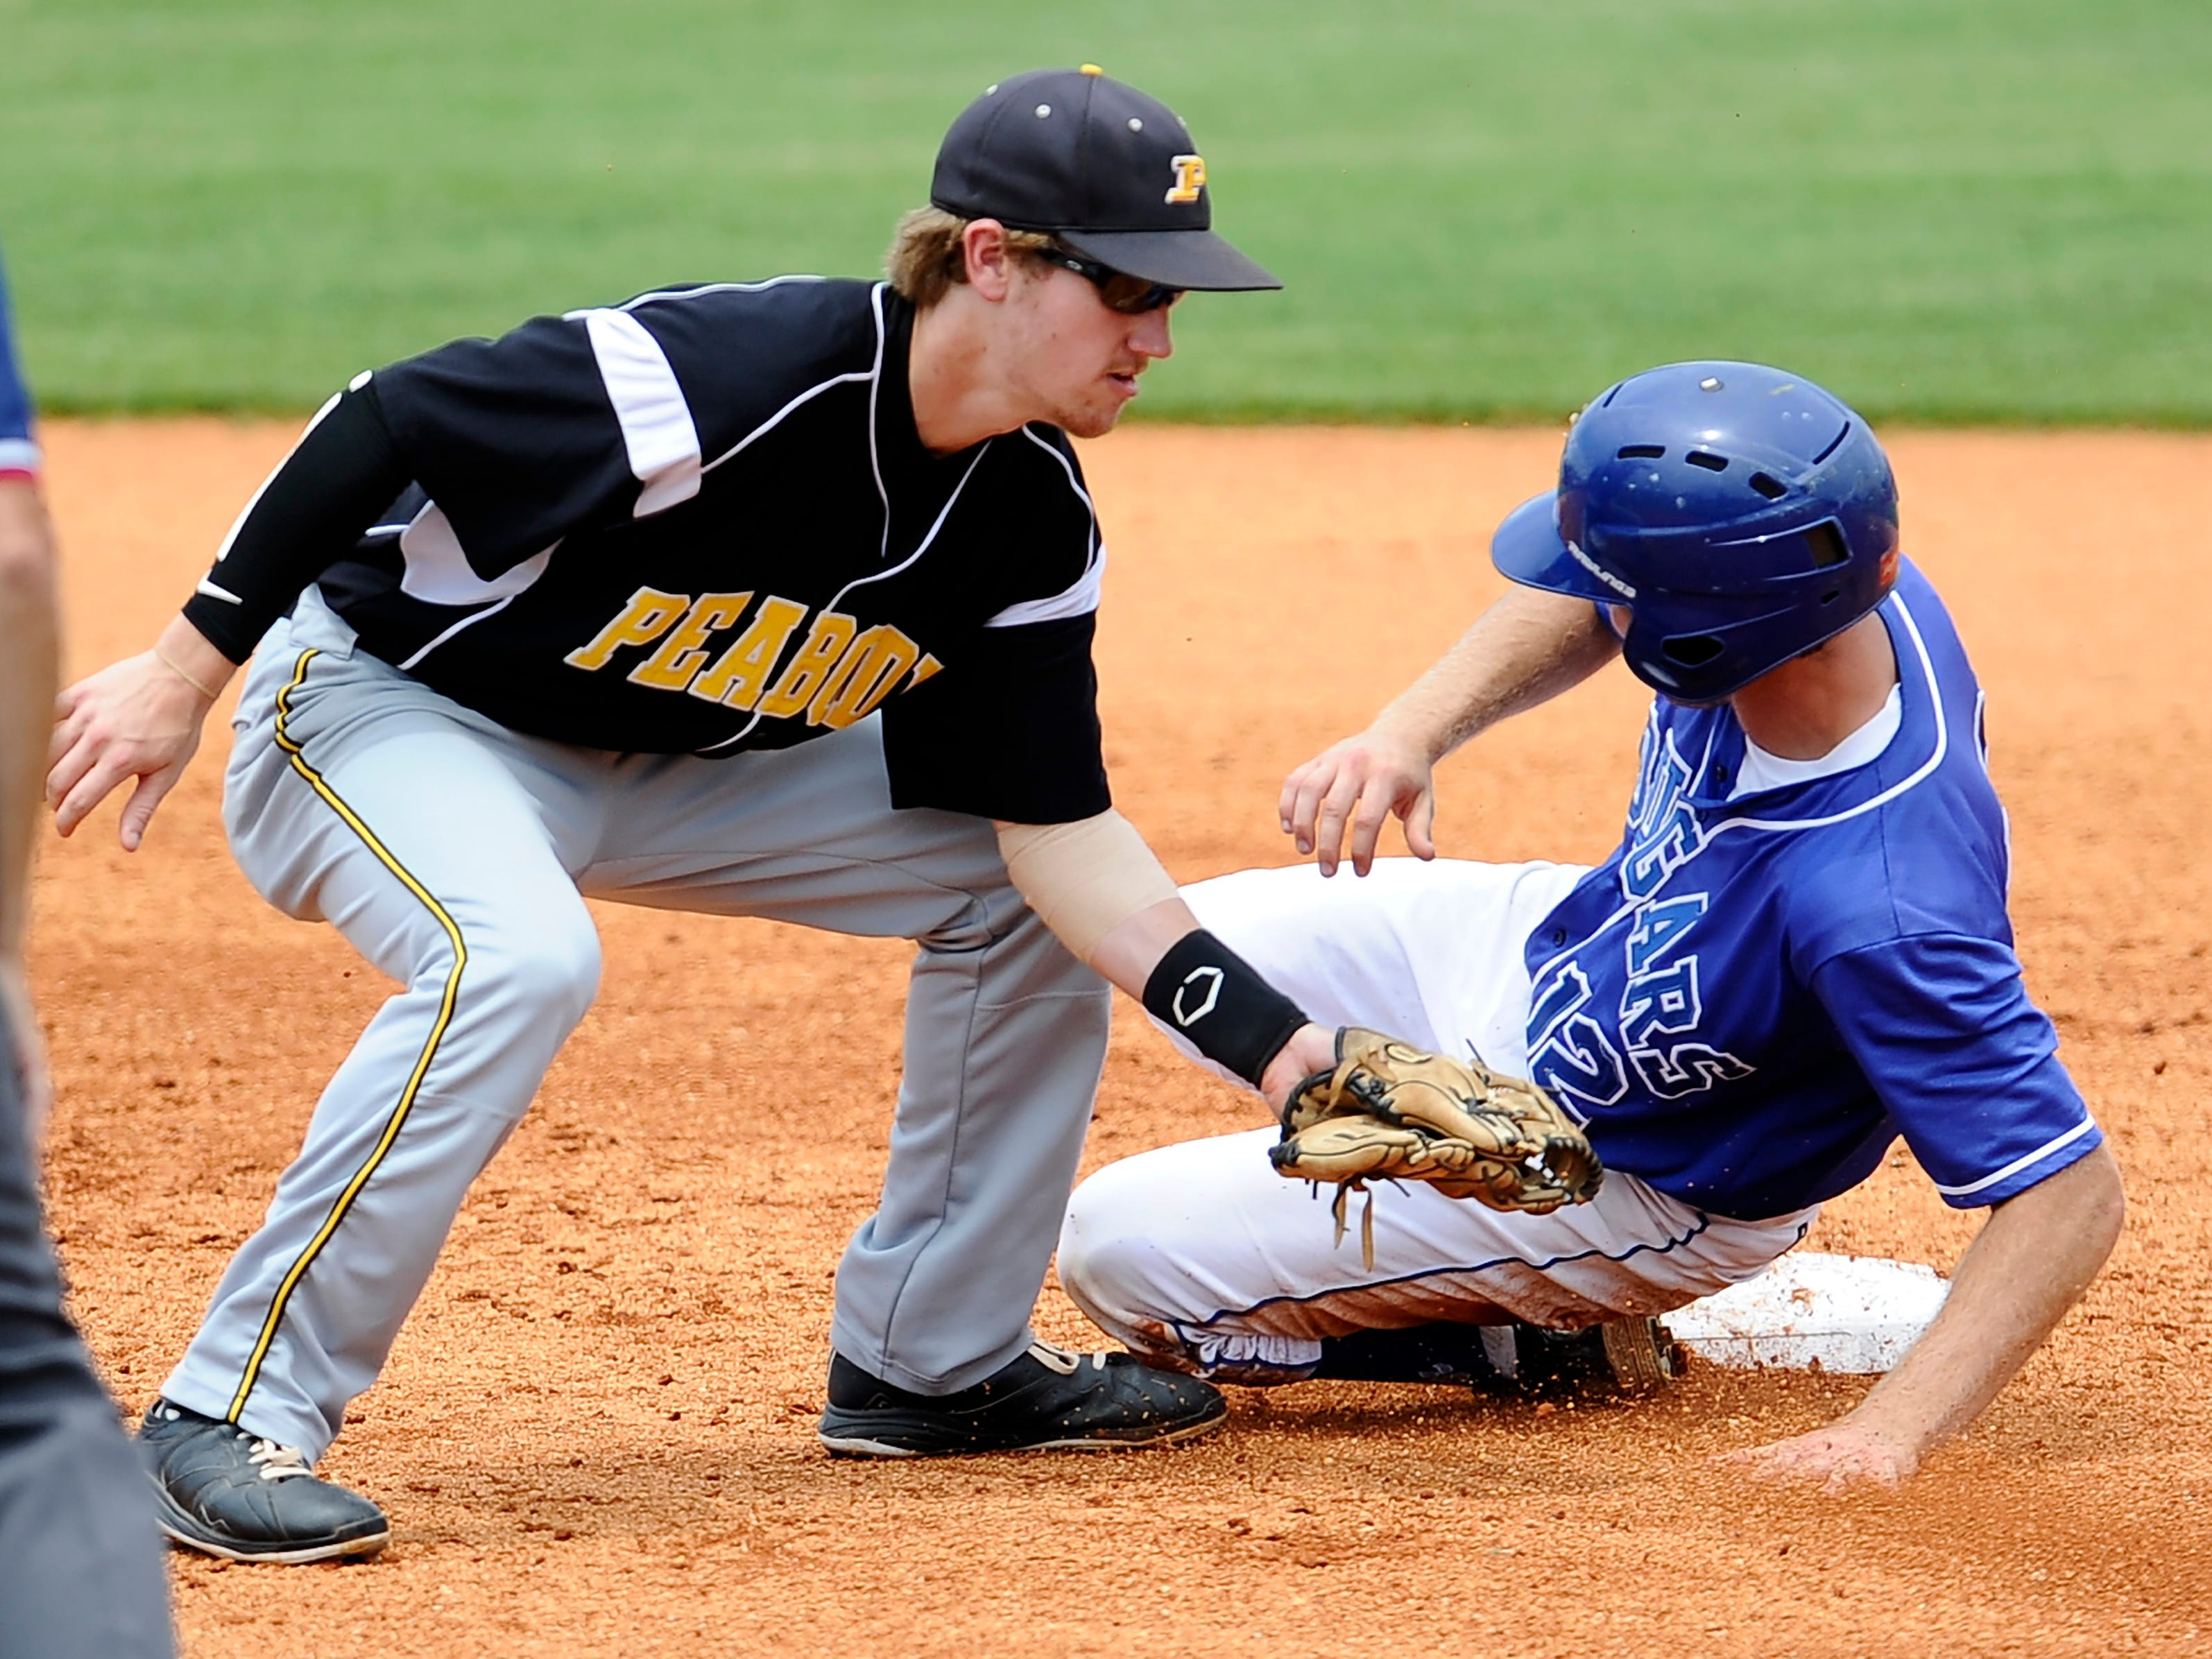 Trenton Peabody's Daniel Hodges (15) tries to tag out Goodpasture's Jordan Goff (12) as he steals second base on Wednesday.